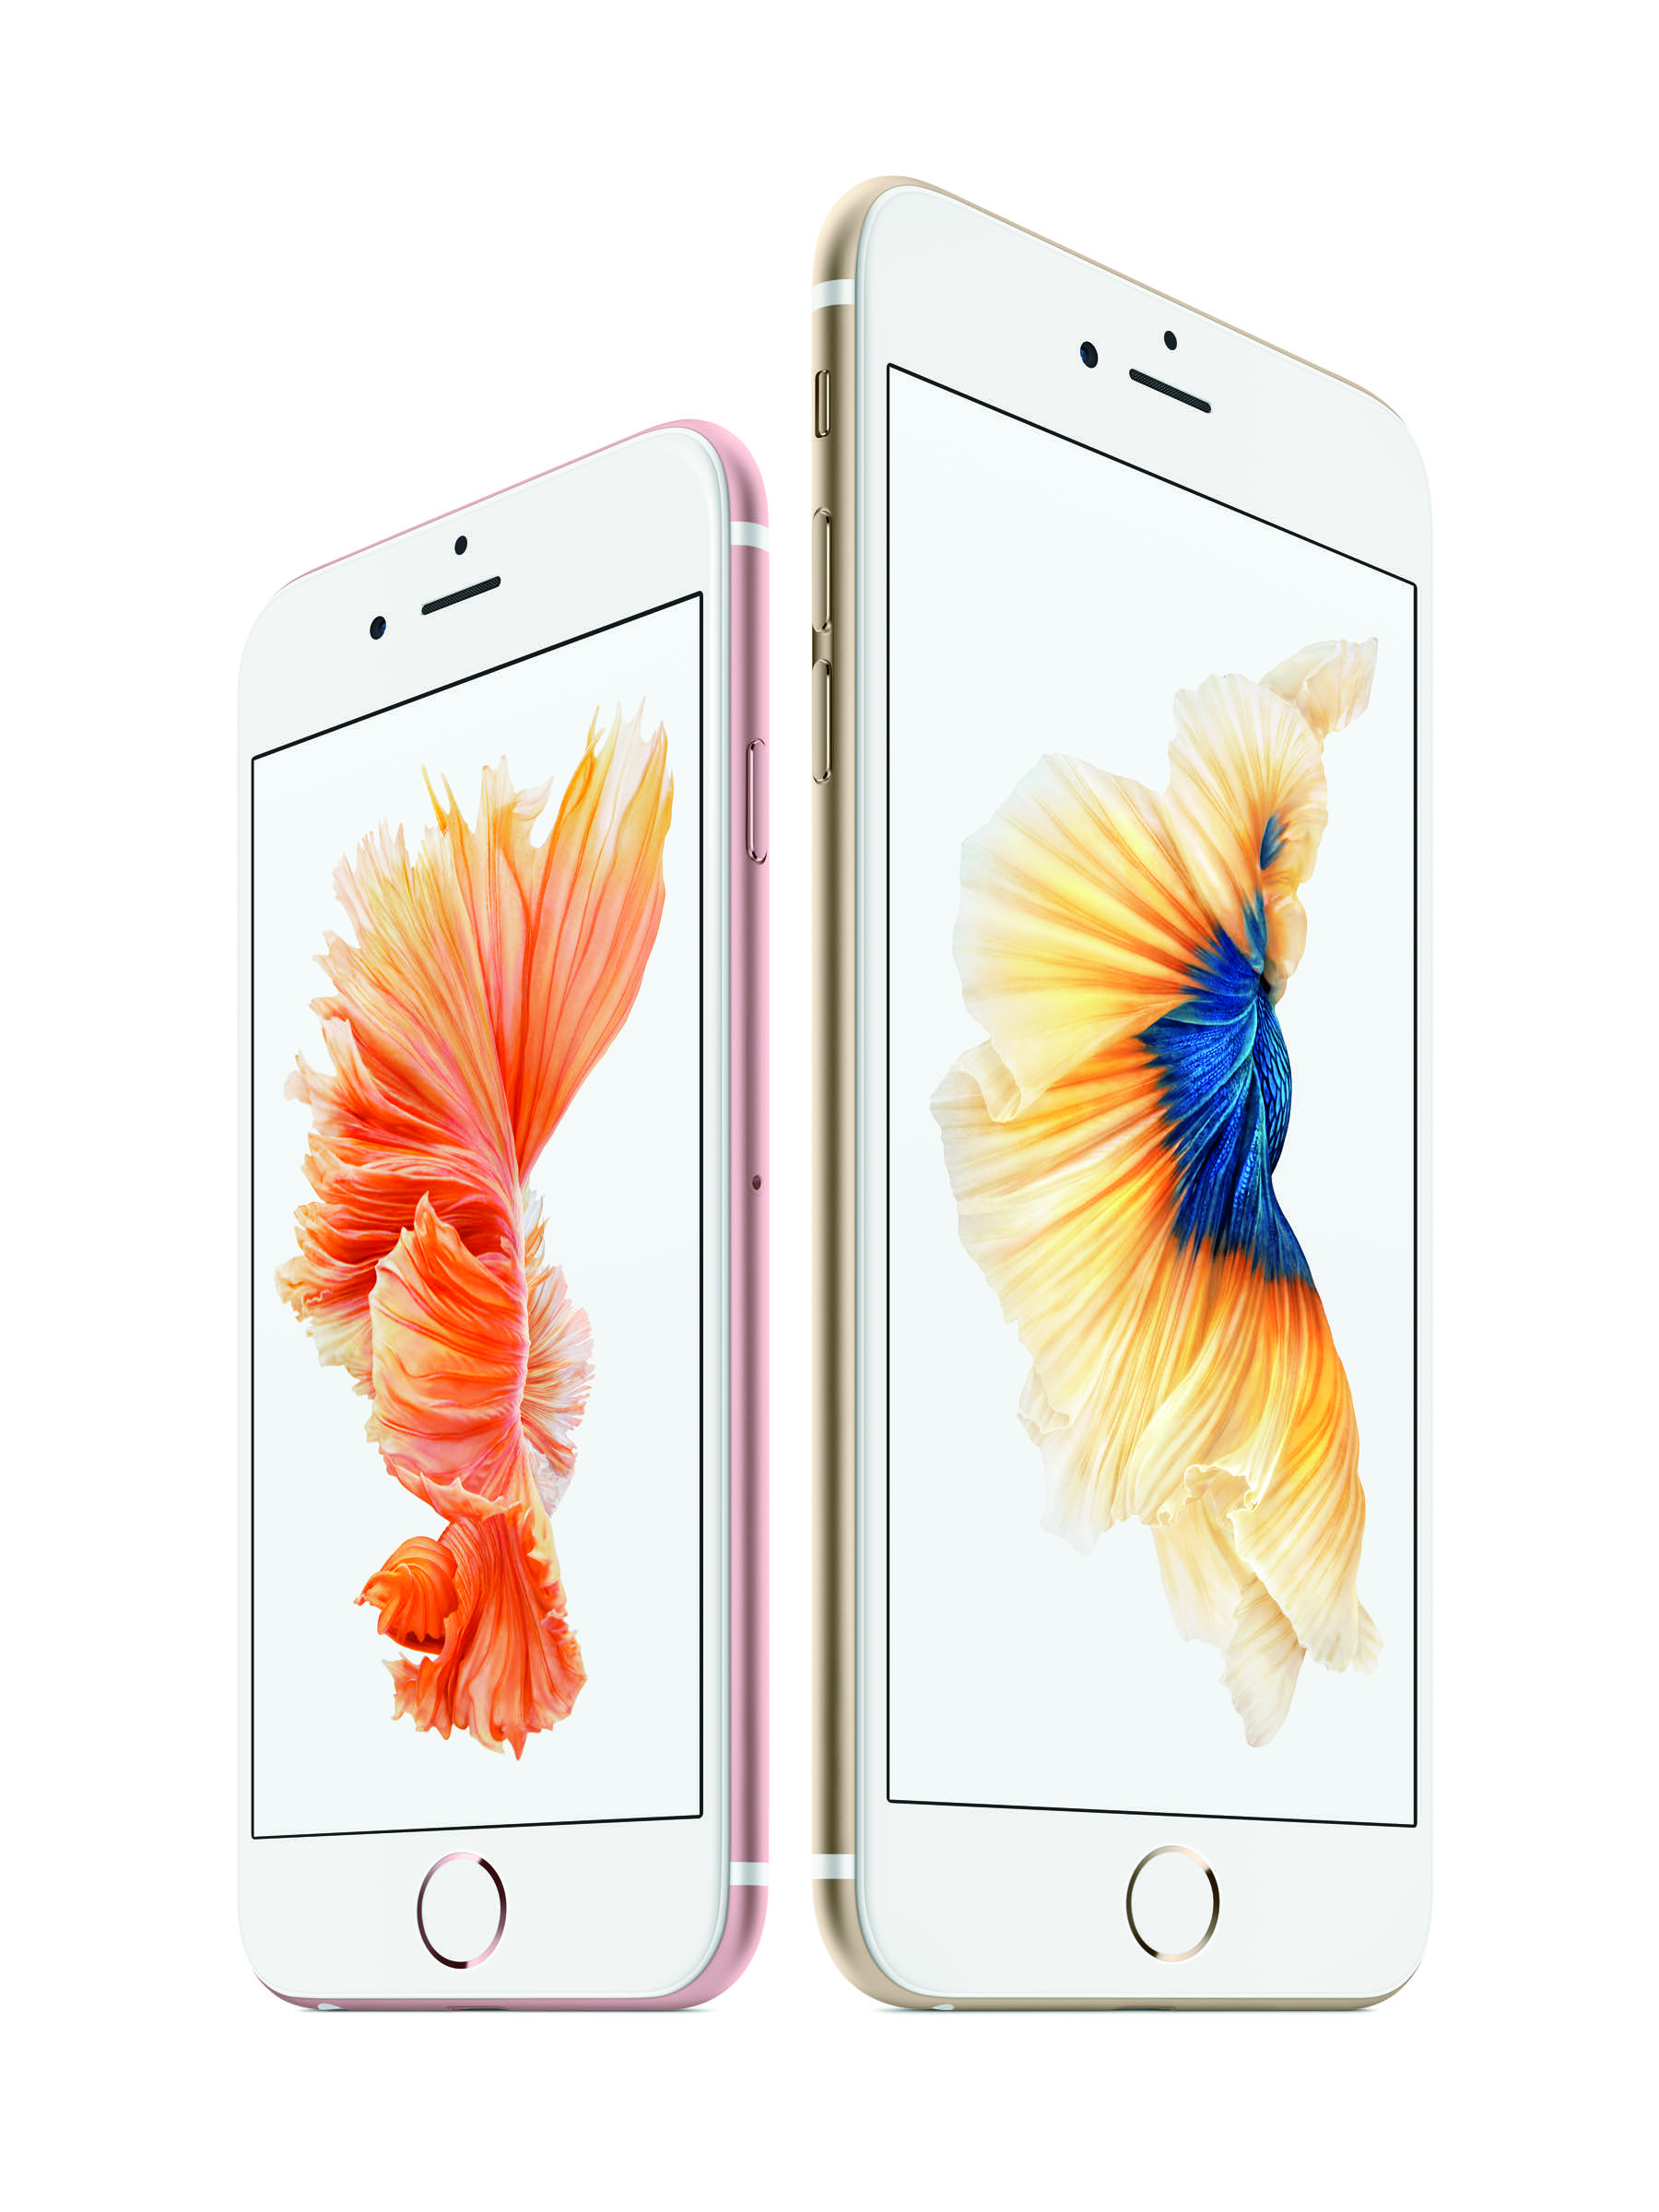 Apple's iPhone 6s preorder will be a record-breaker